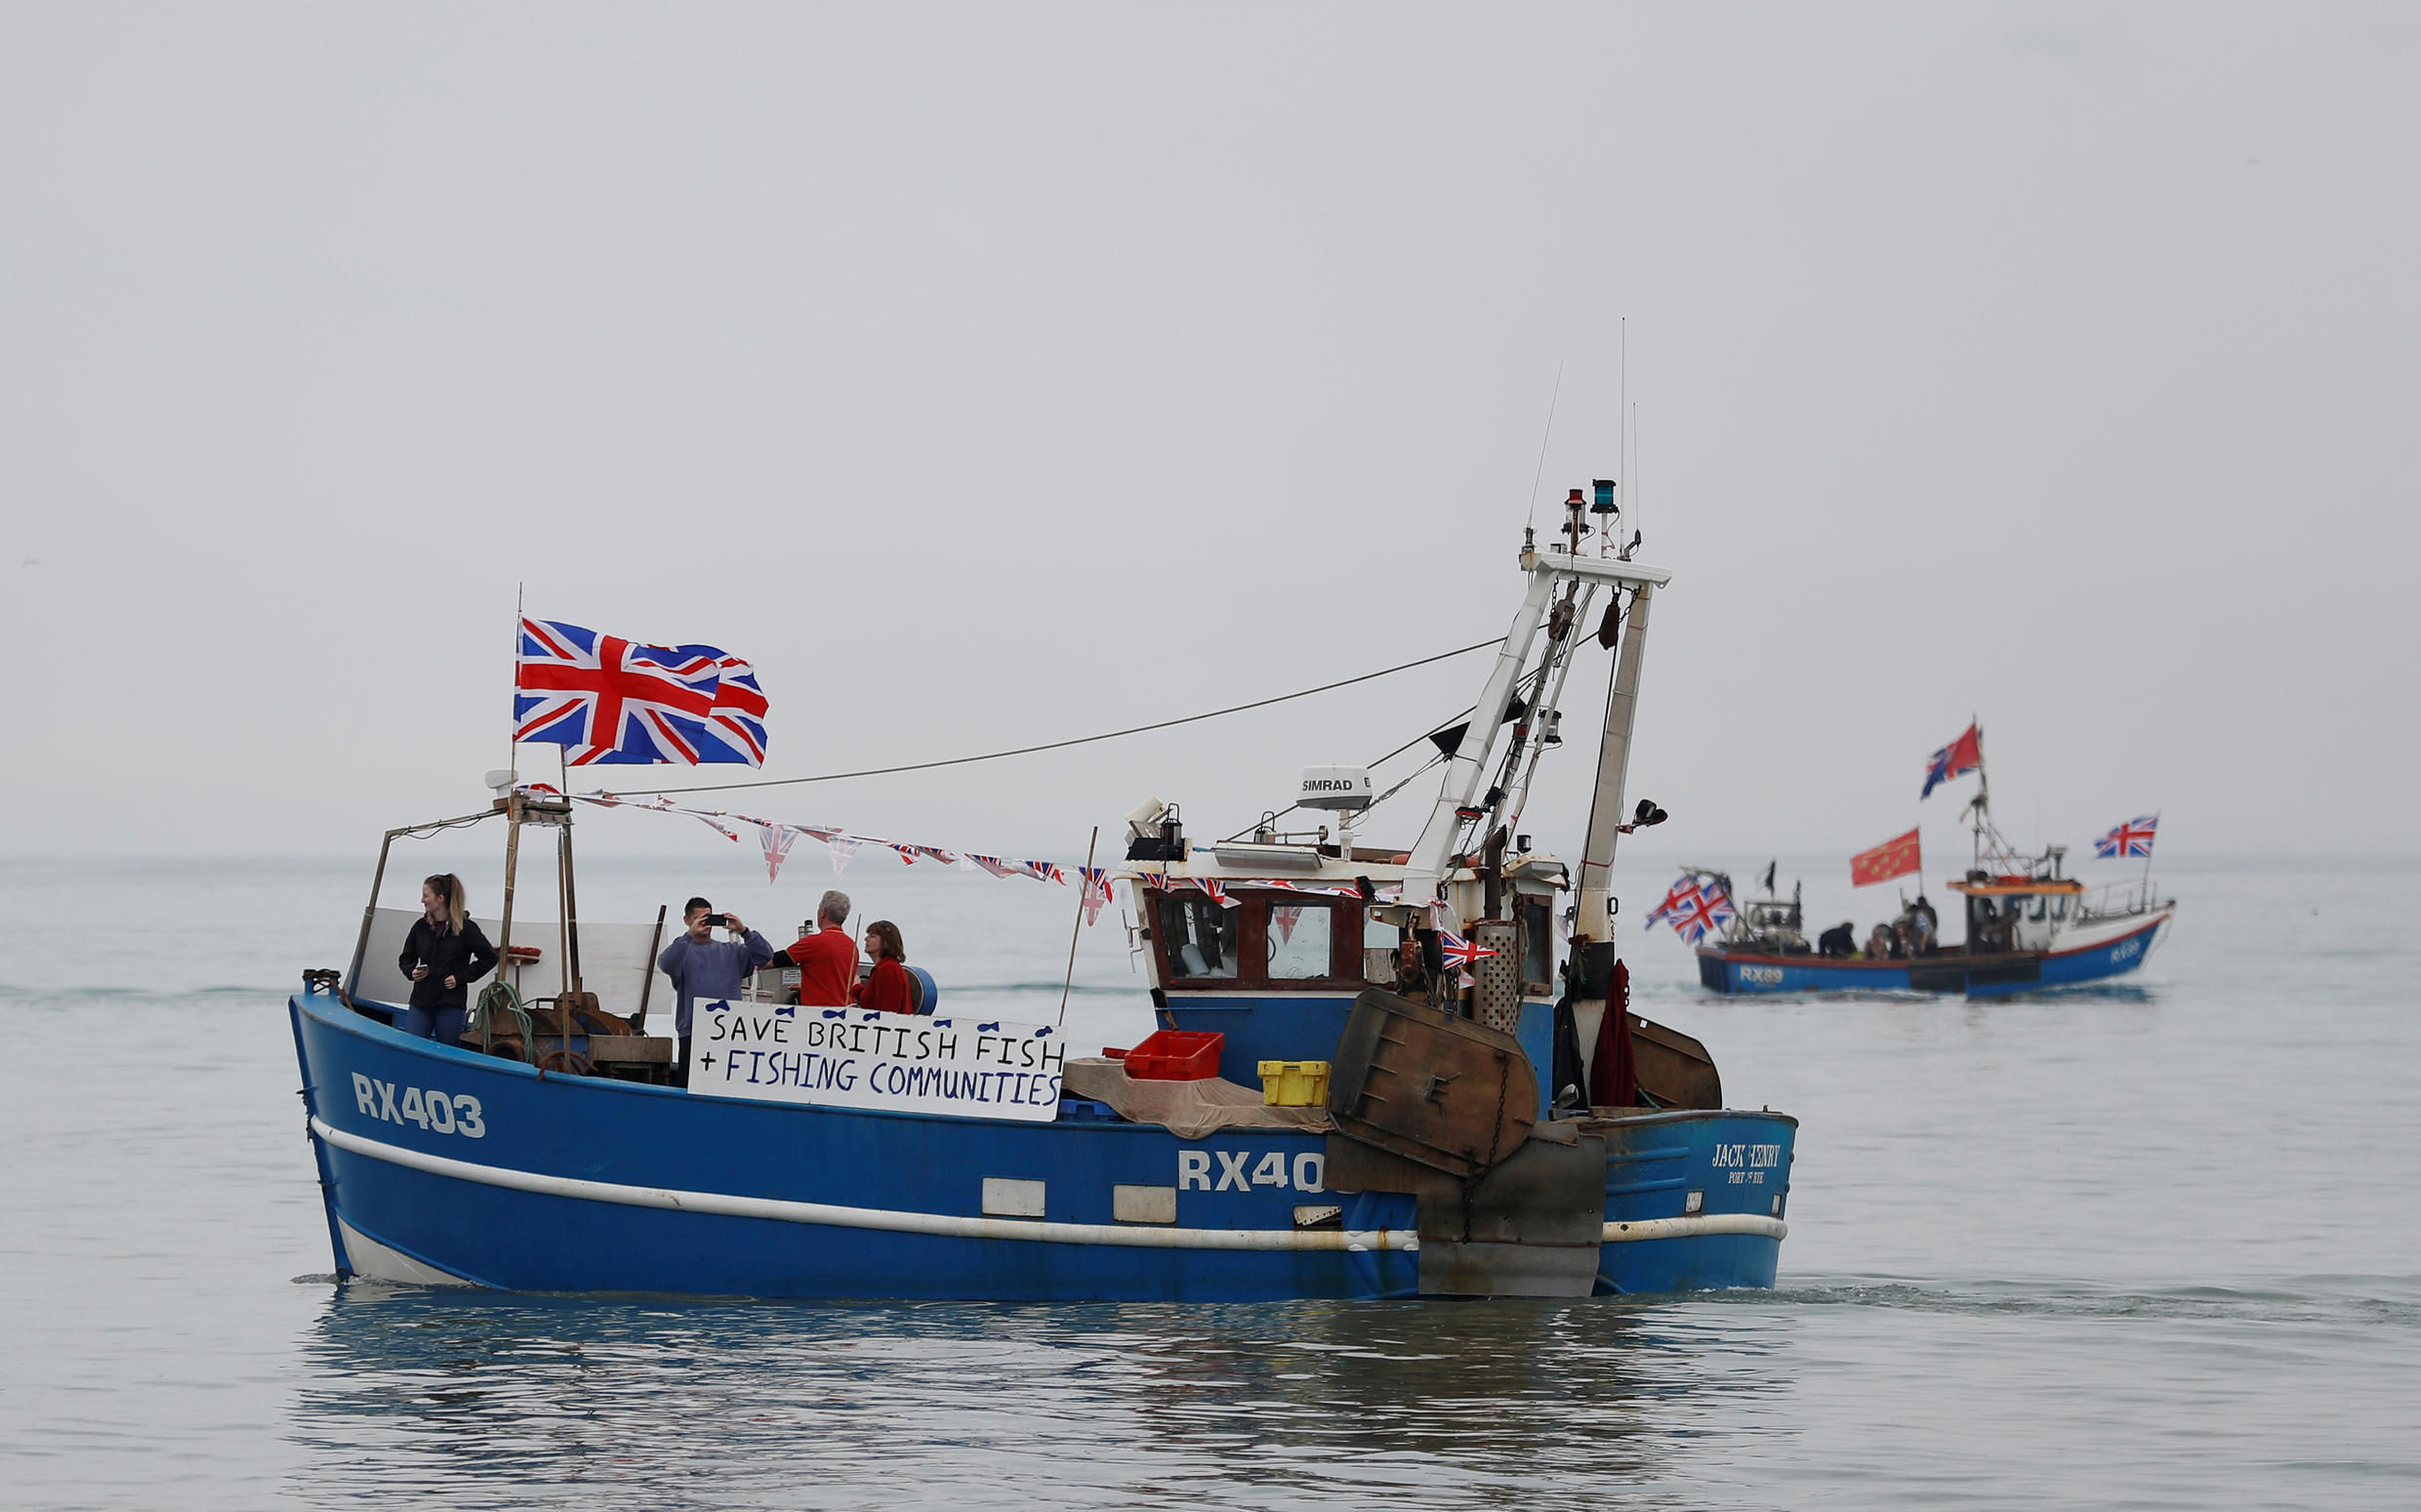 British fisherman stage a protest off the coast of Hastings on April 8, 2018.